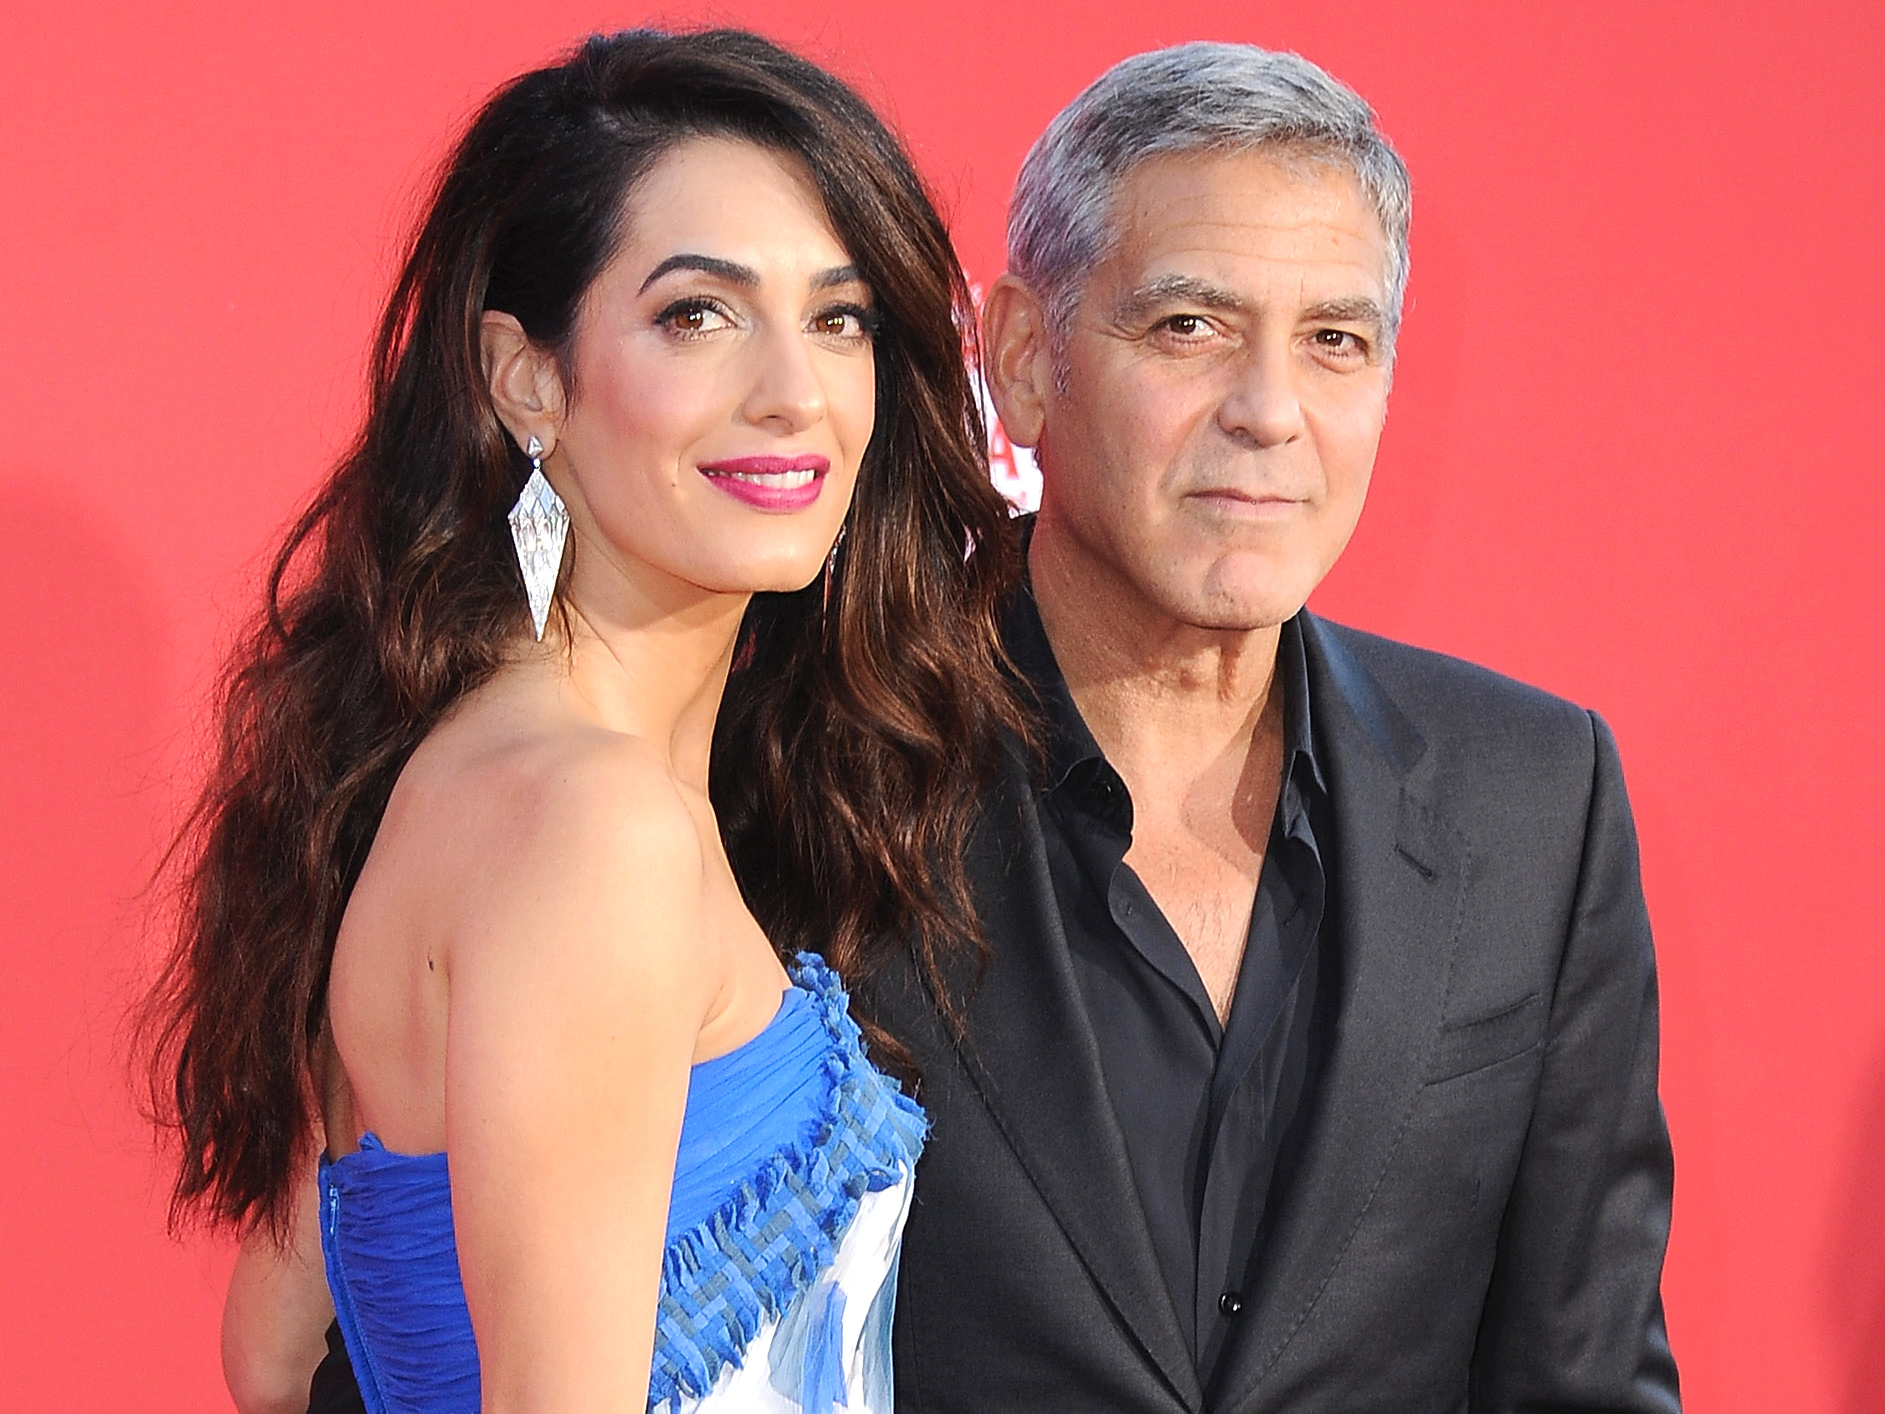 <p>George and Amal Clooney's Twins</p>